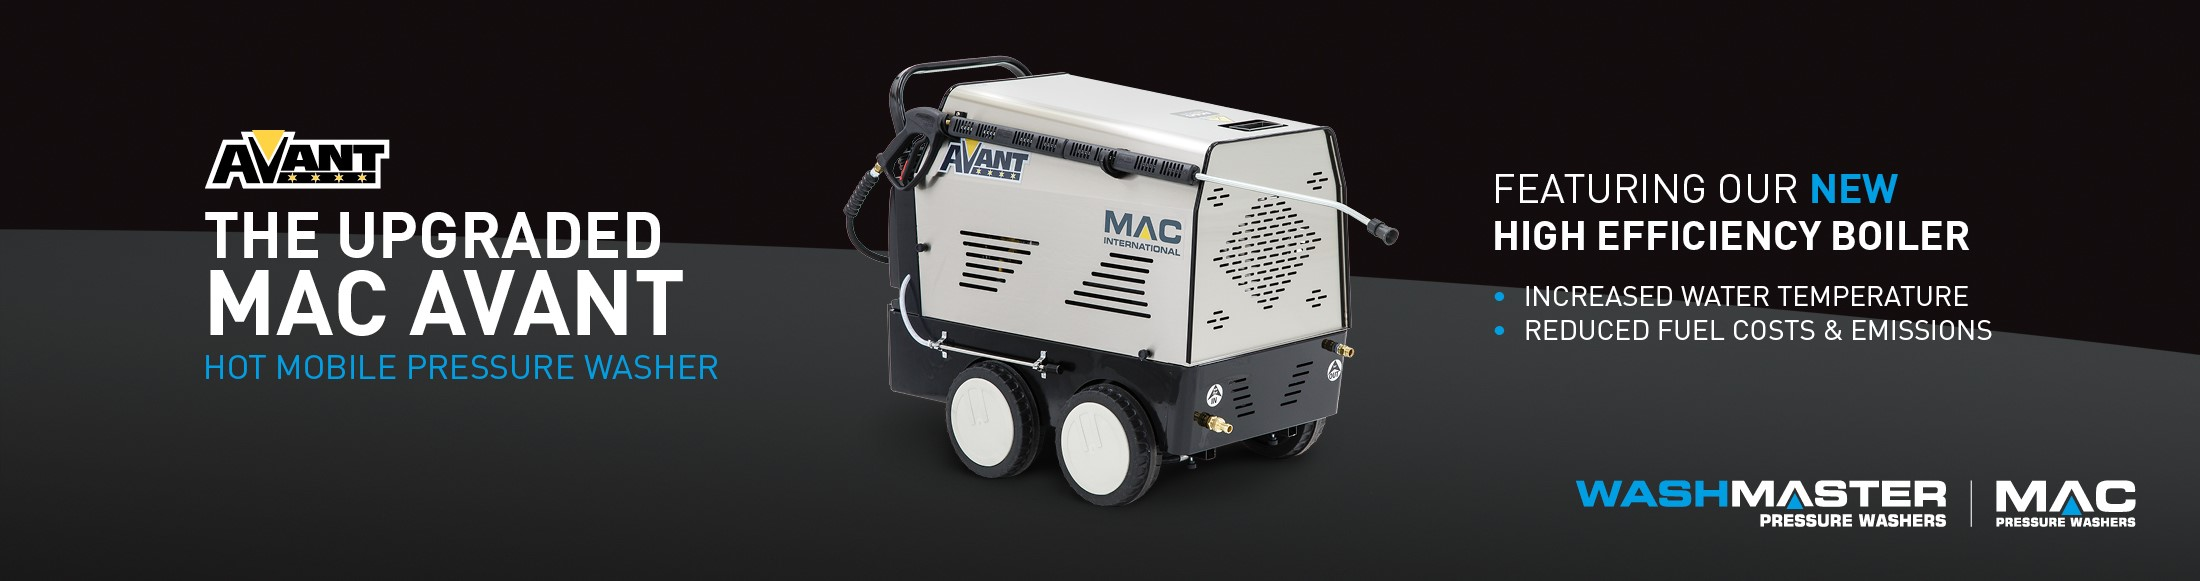 The Upgraded Mac Avant Featuring our new high efficiency boiler